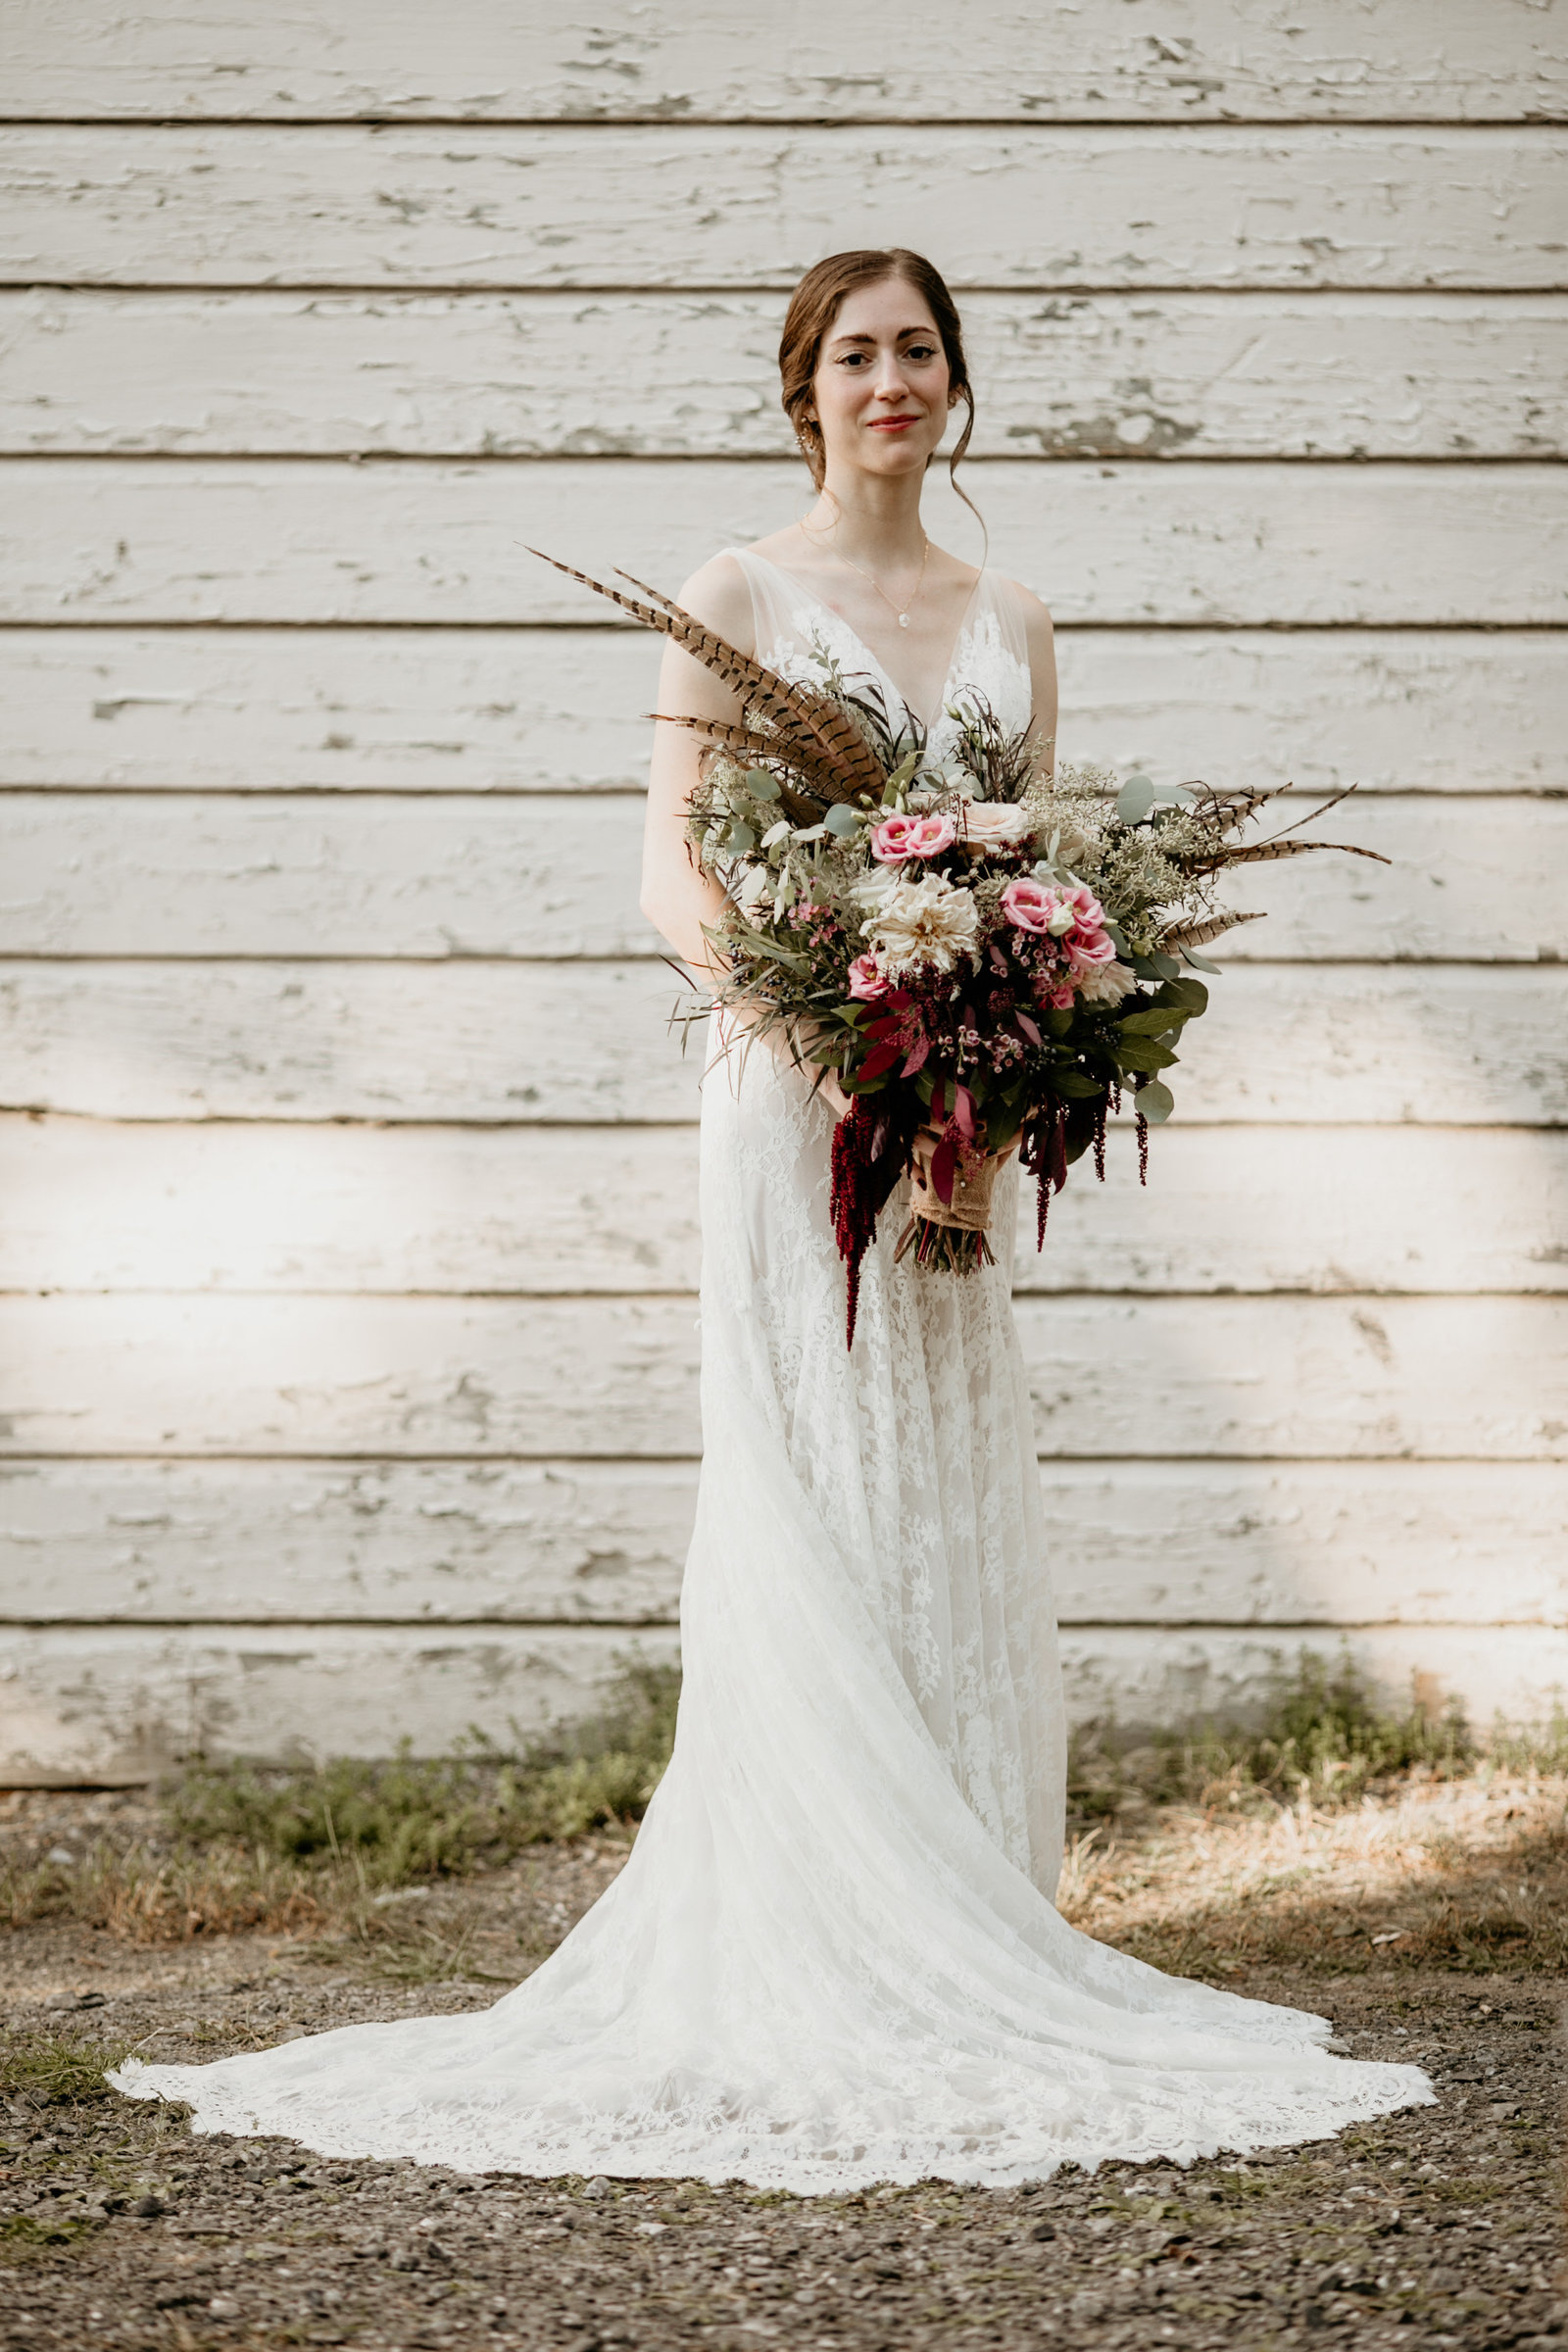 A bride and her bouquet.